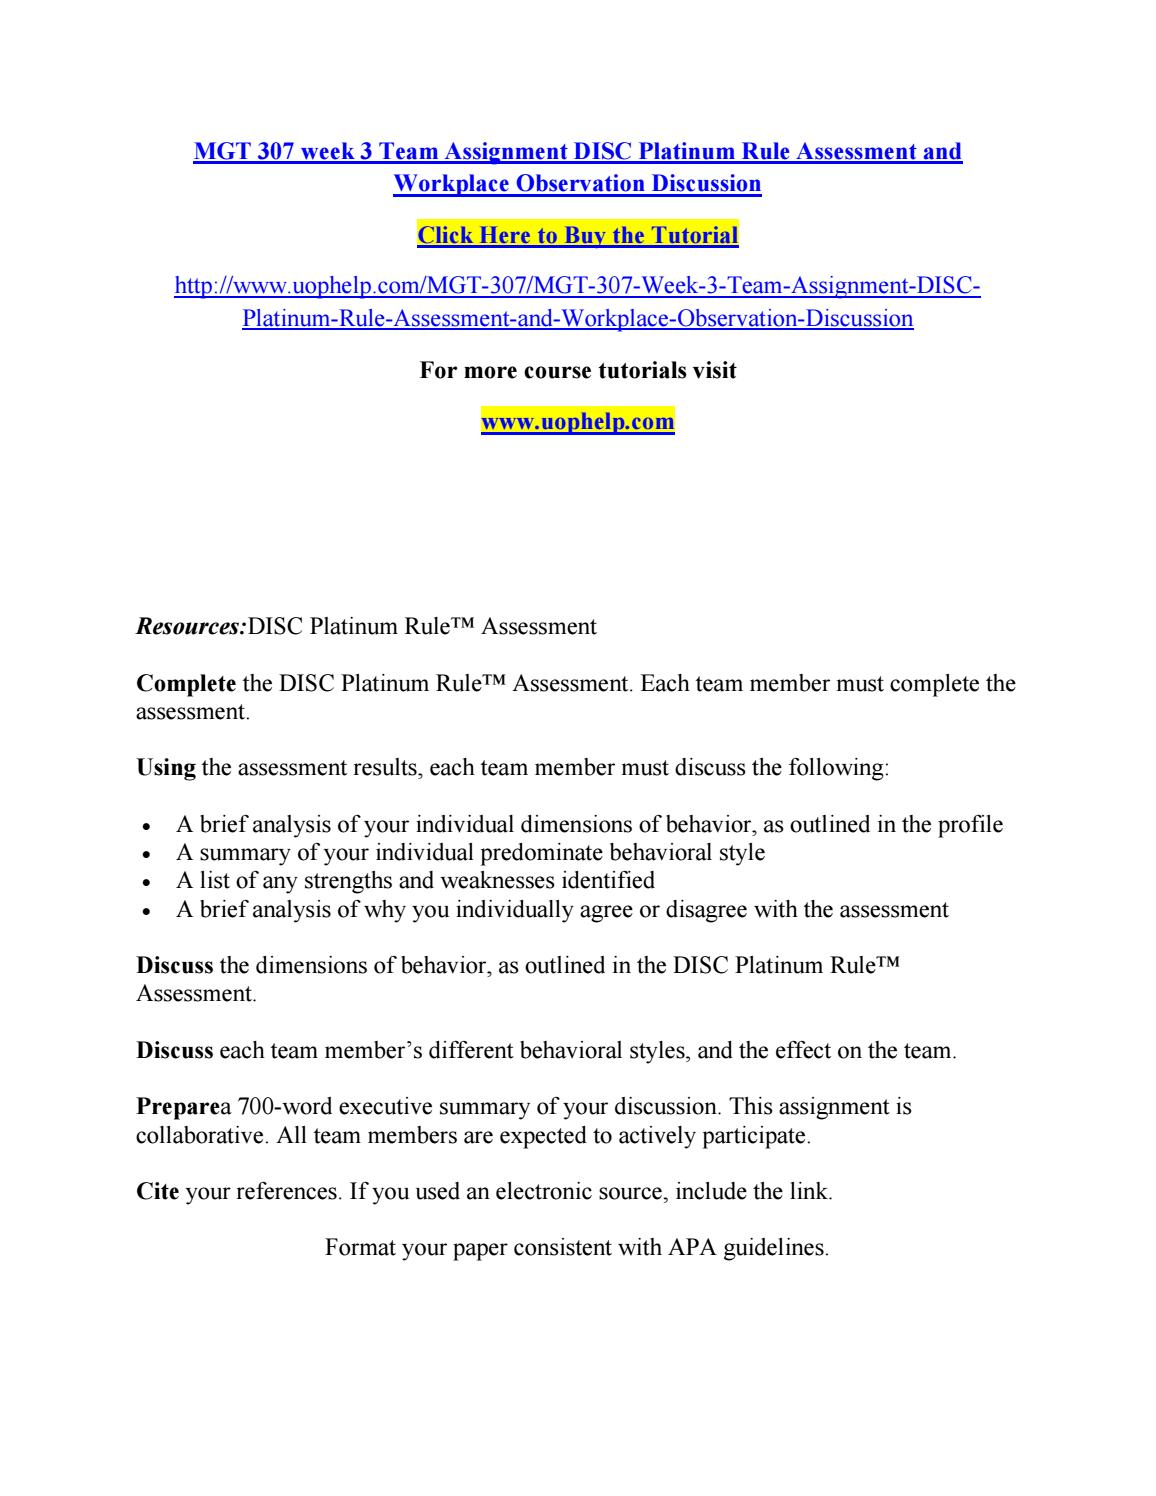 disc platinum rule assessment paper